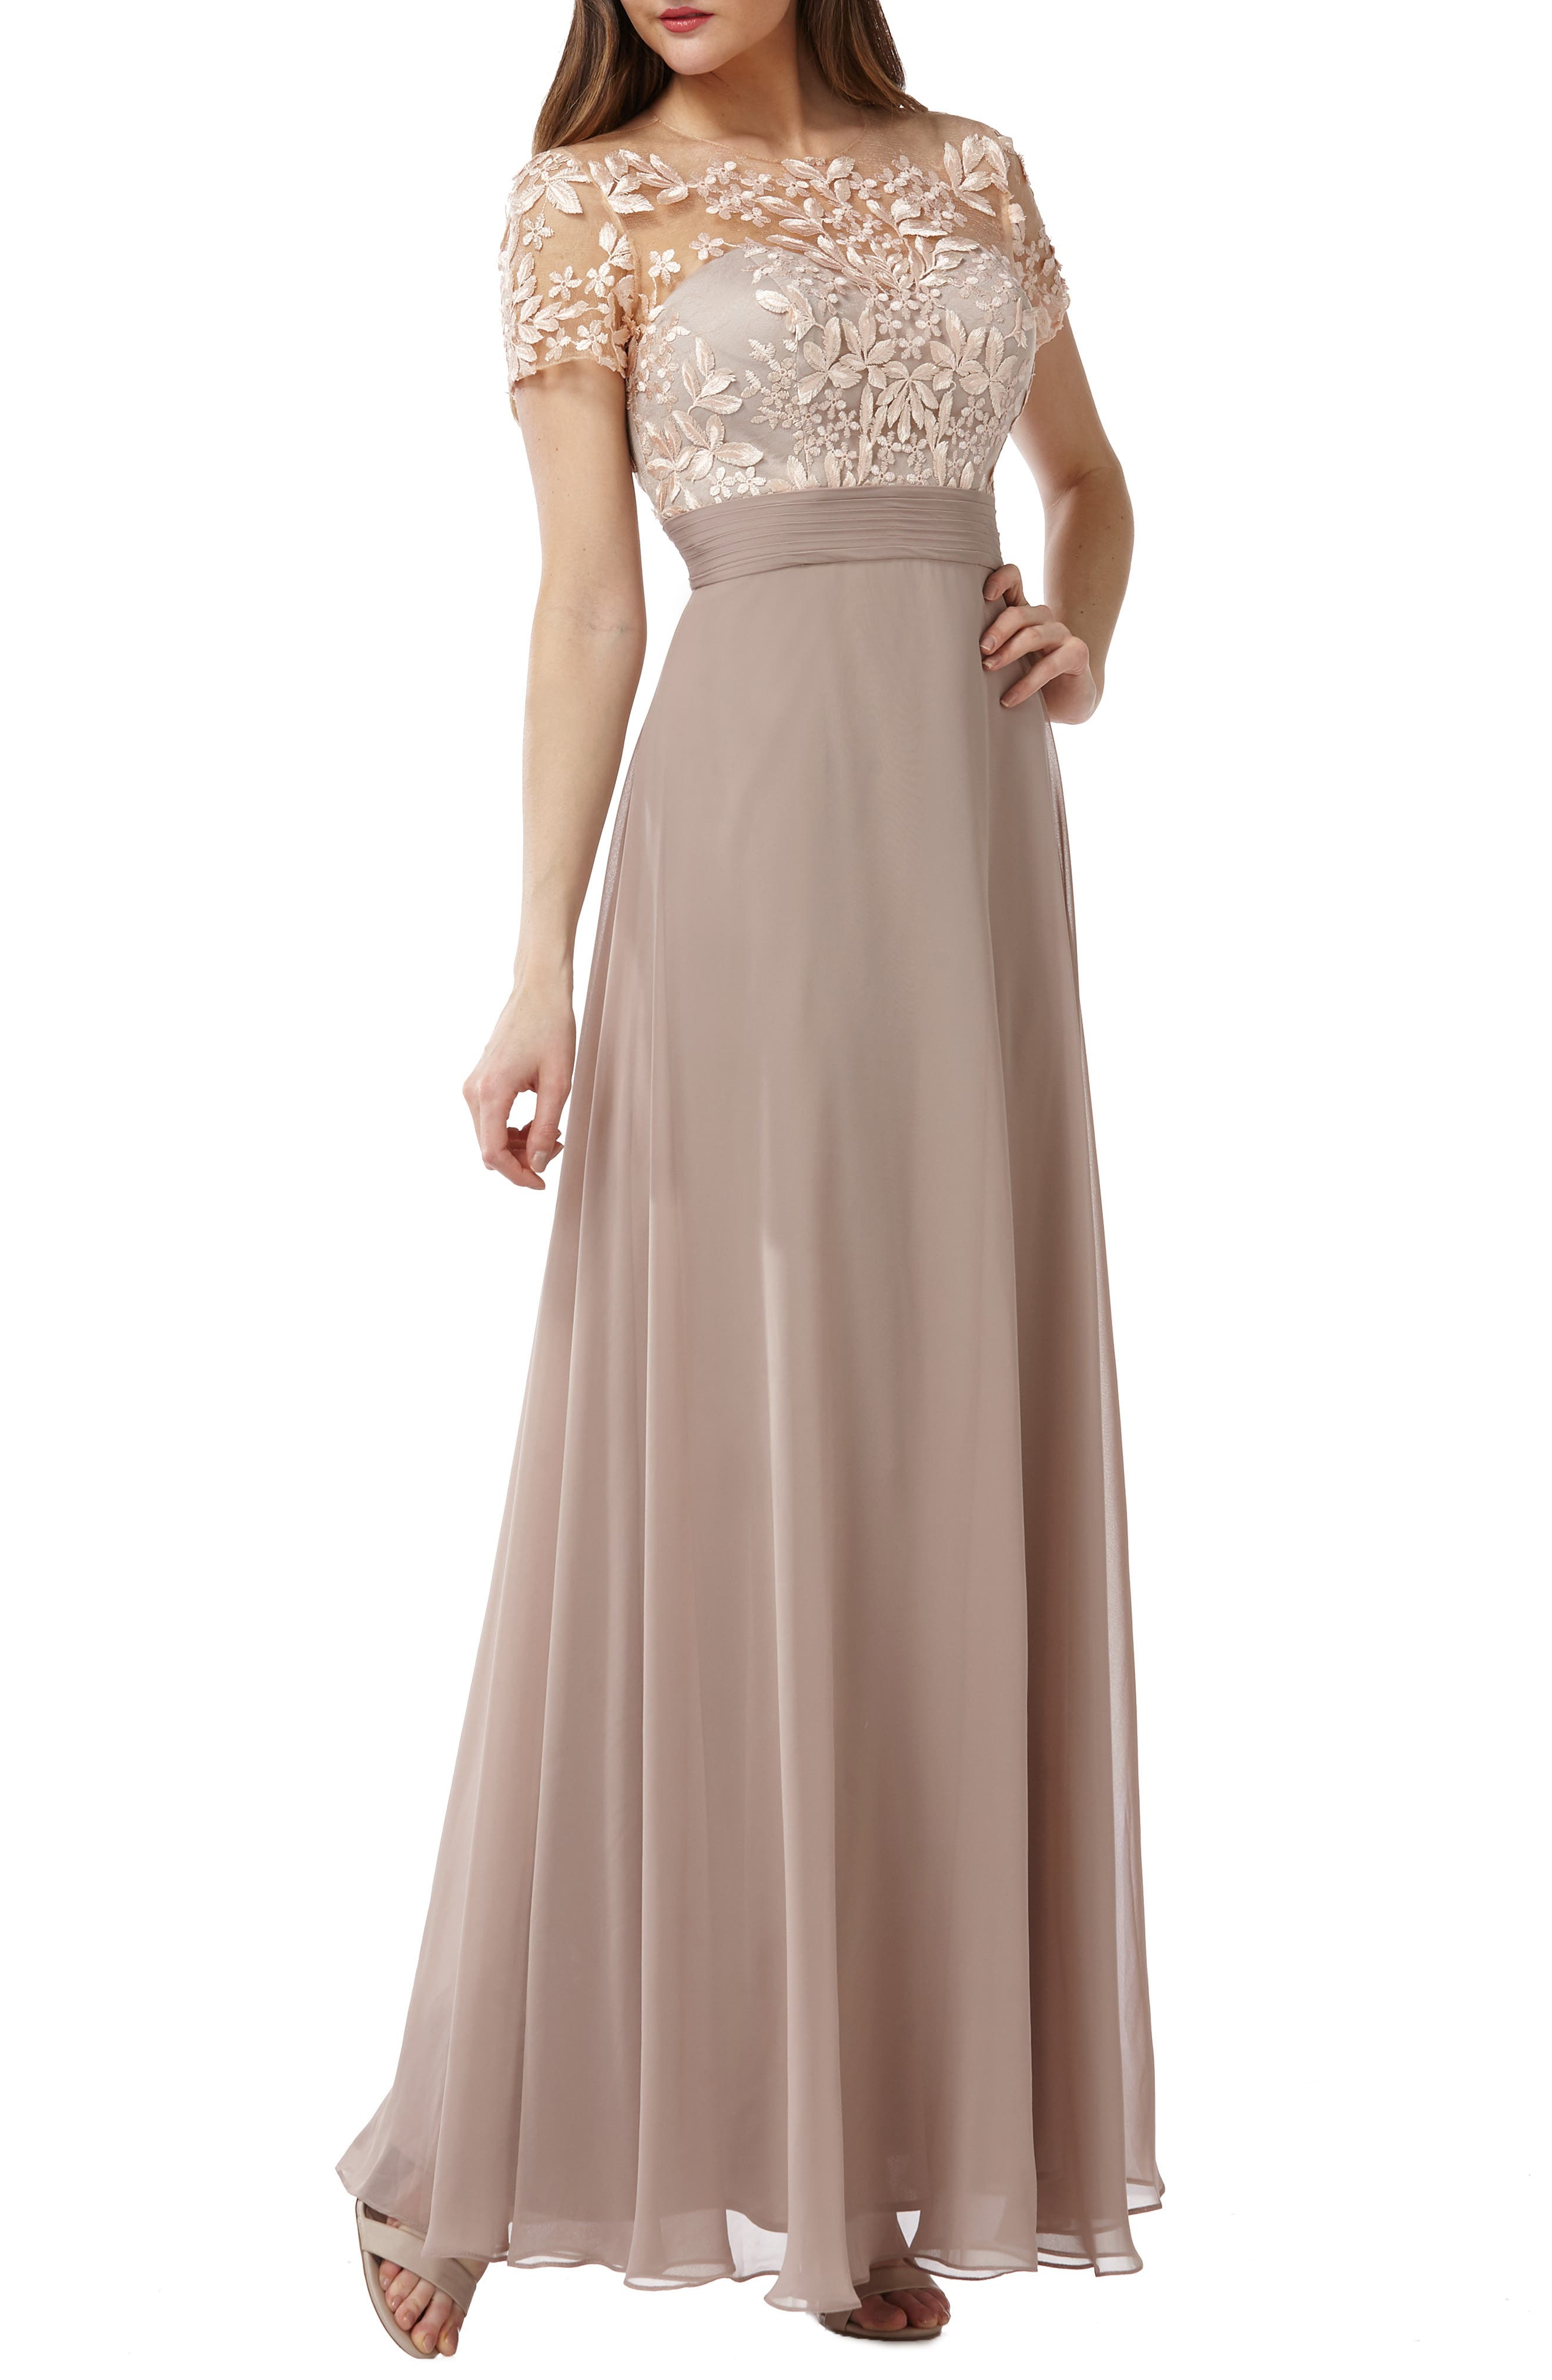 JS COLLECTIONS,                             Embroidered Illusion Bodice Gown,                             Main thumbnail 1, color,                             BLUSH/ NUDE